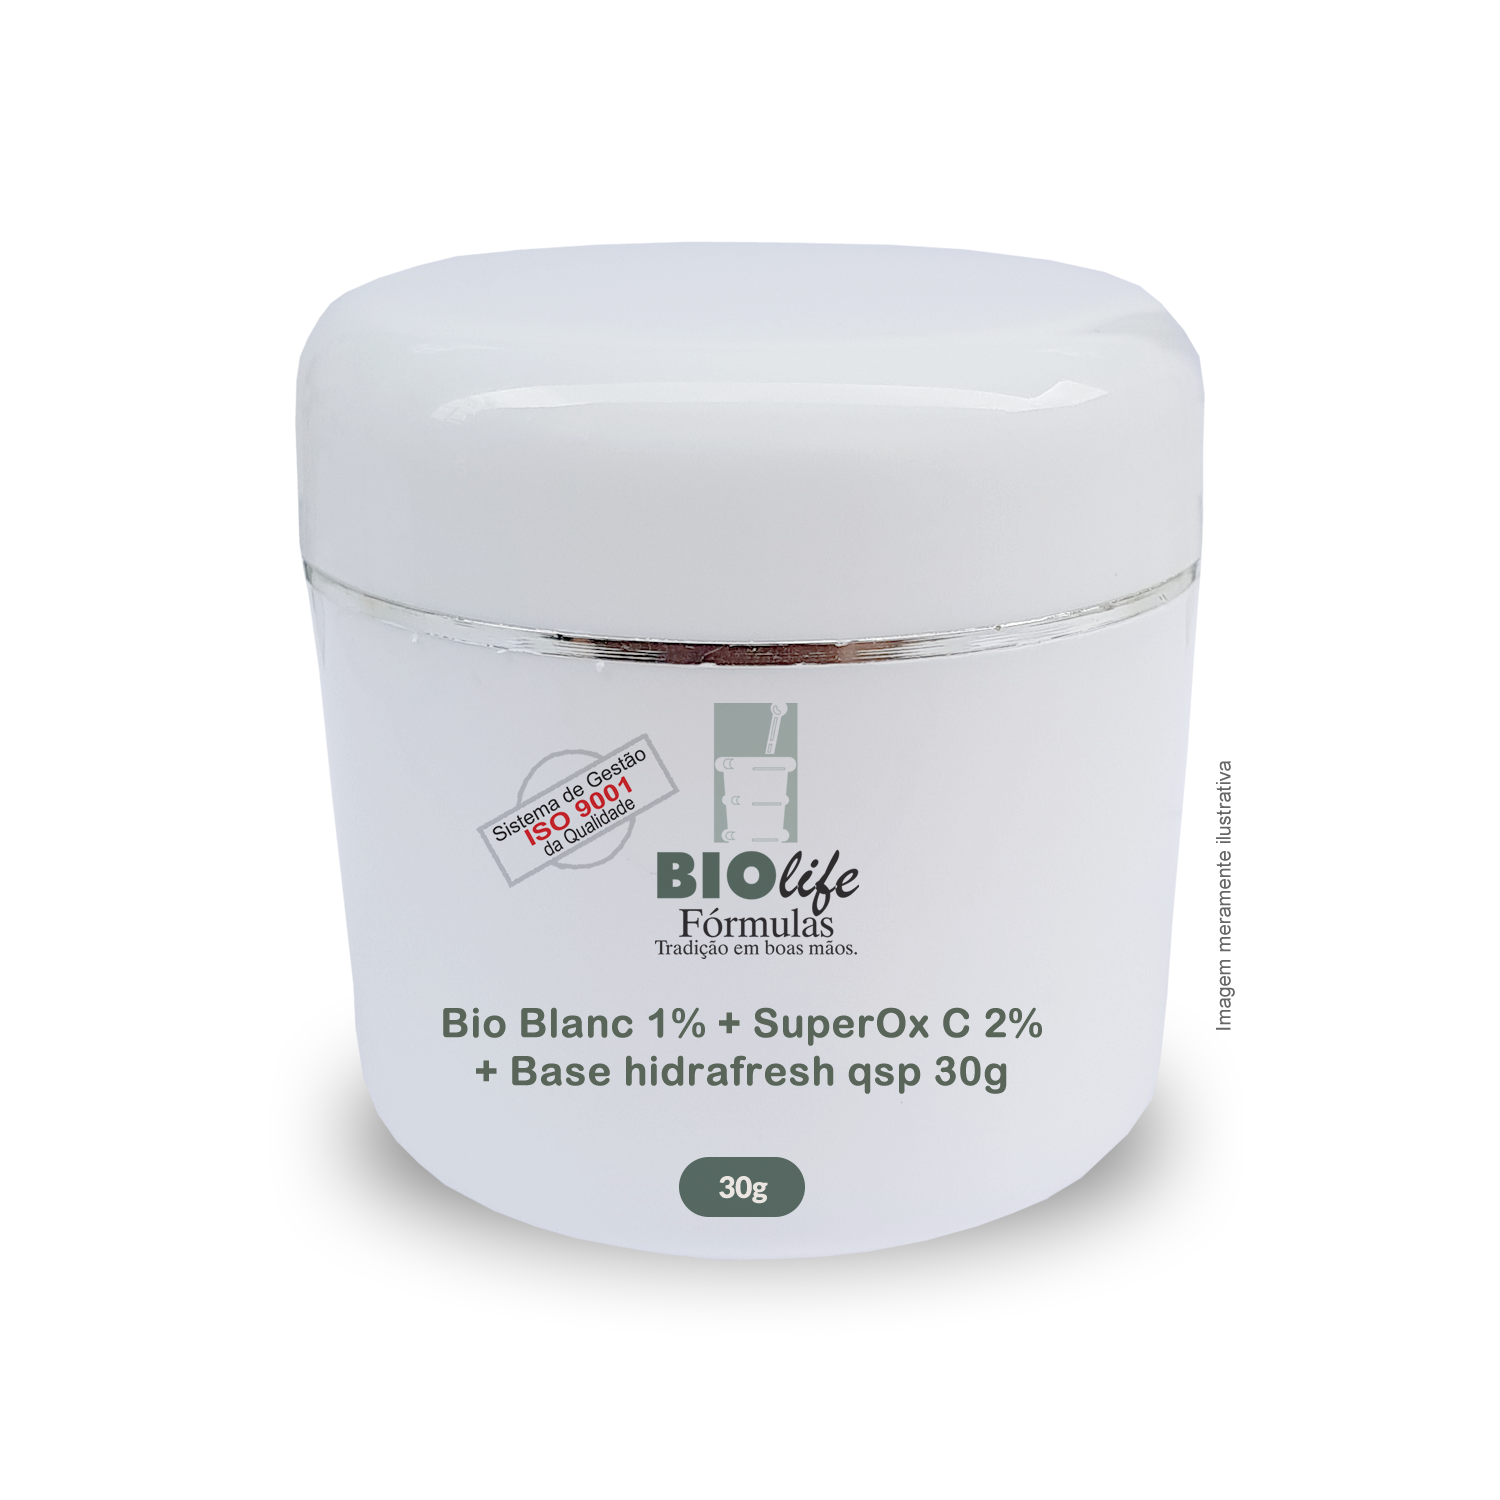 Bio Blanc 1% + SuperOx C 2% + Base hidrafresh qsp 30g